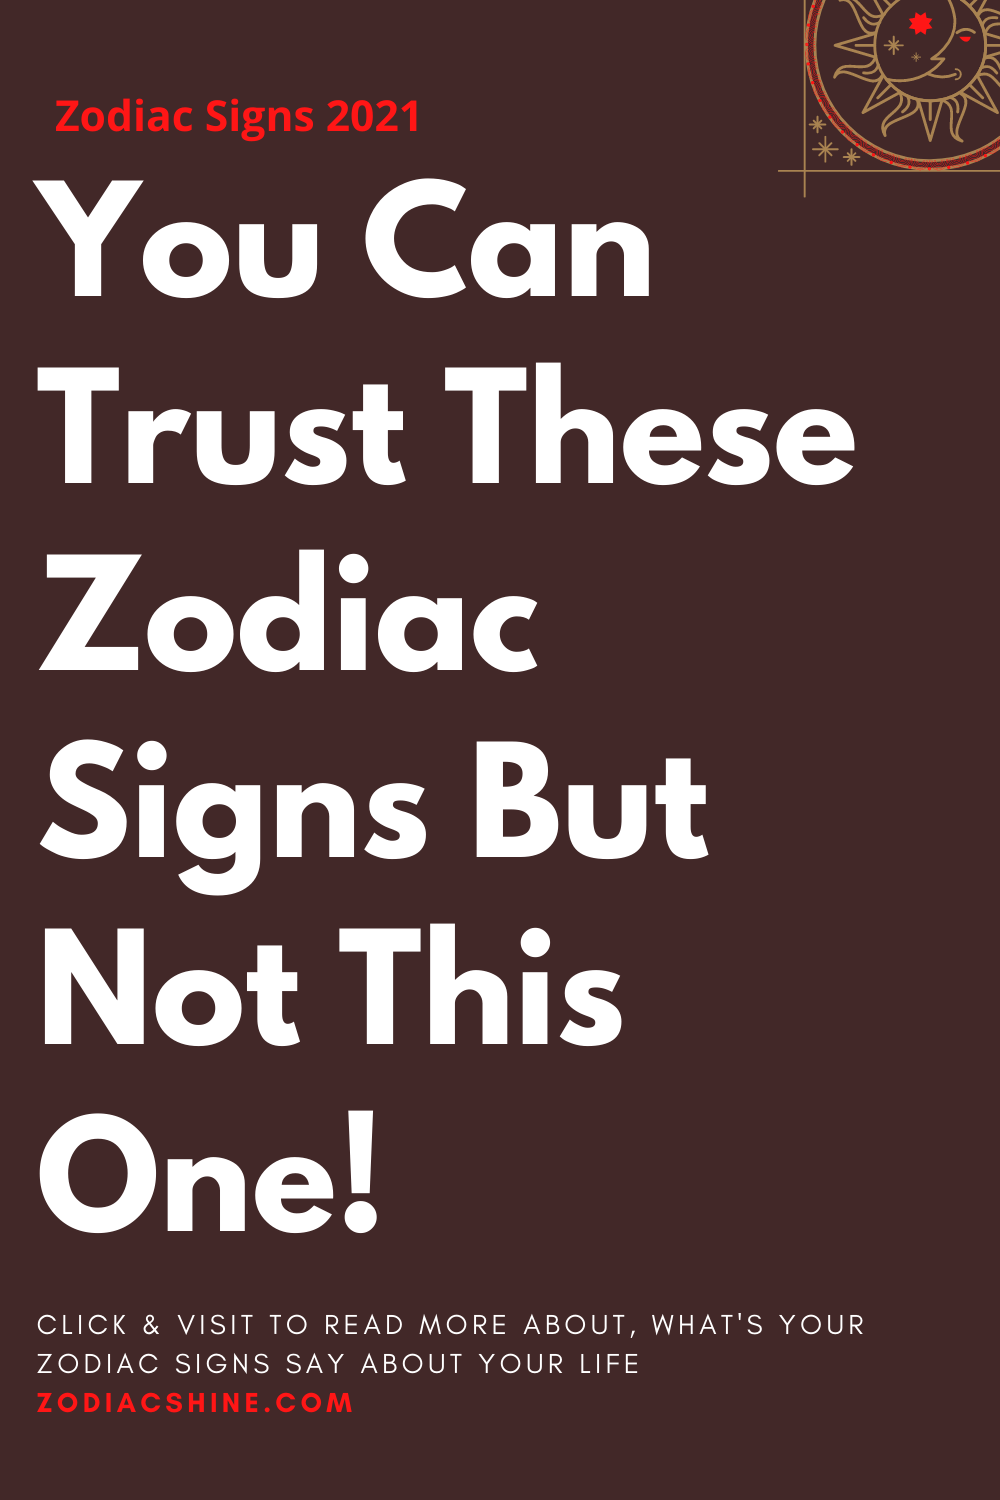 You Can Trust These Zodiac Signs But Not This One!